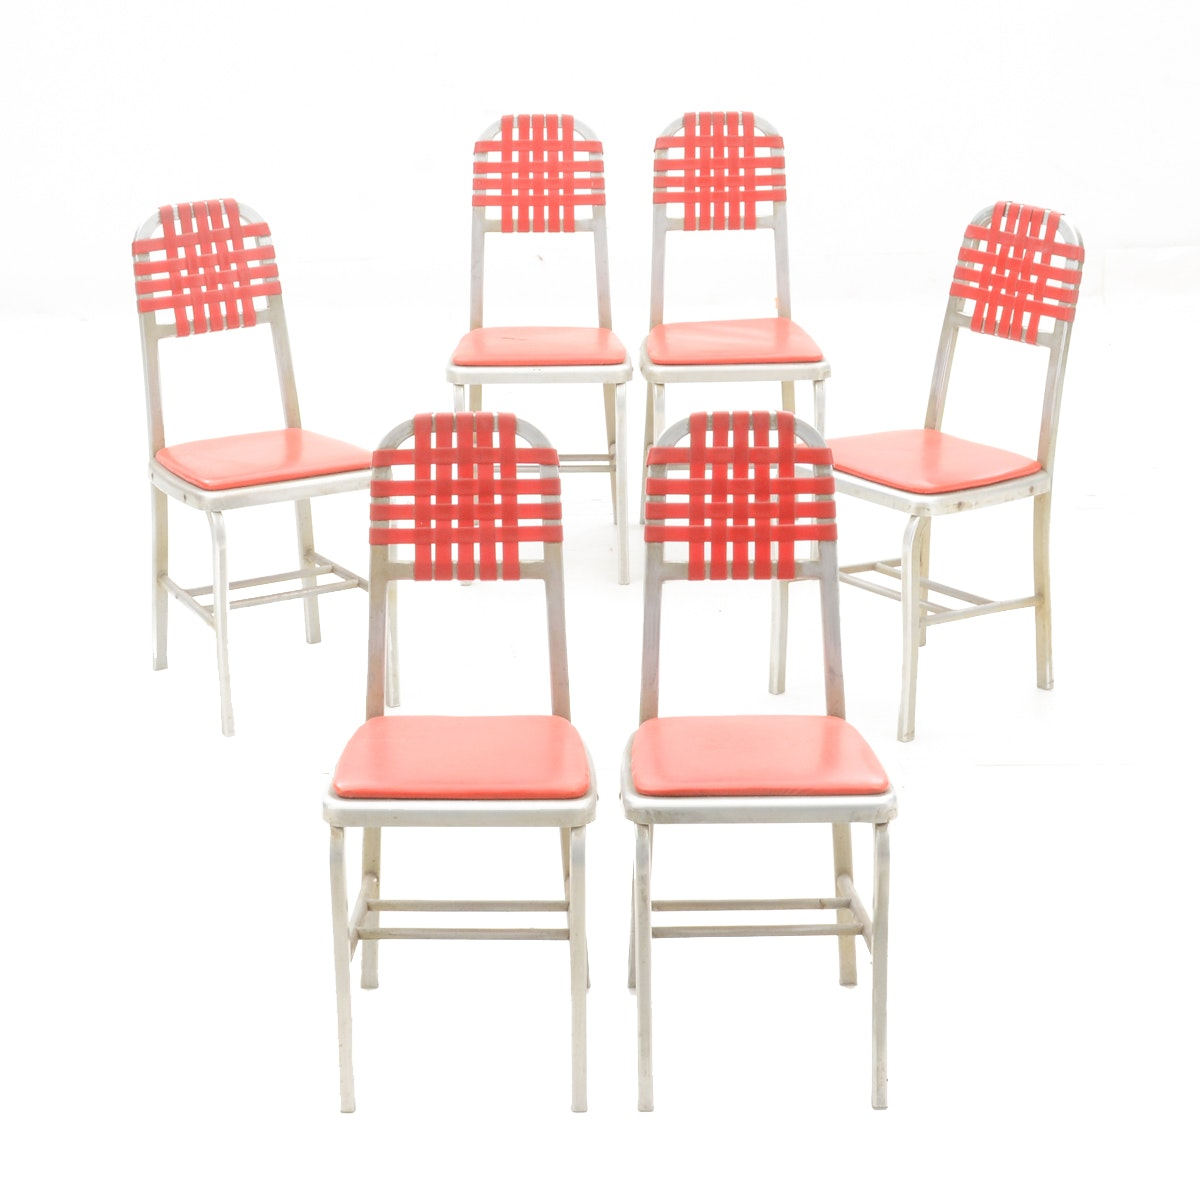 Set of Aluminum and Red Vinyl Chairs